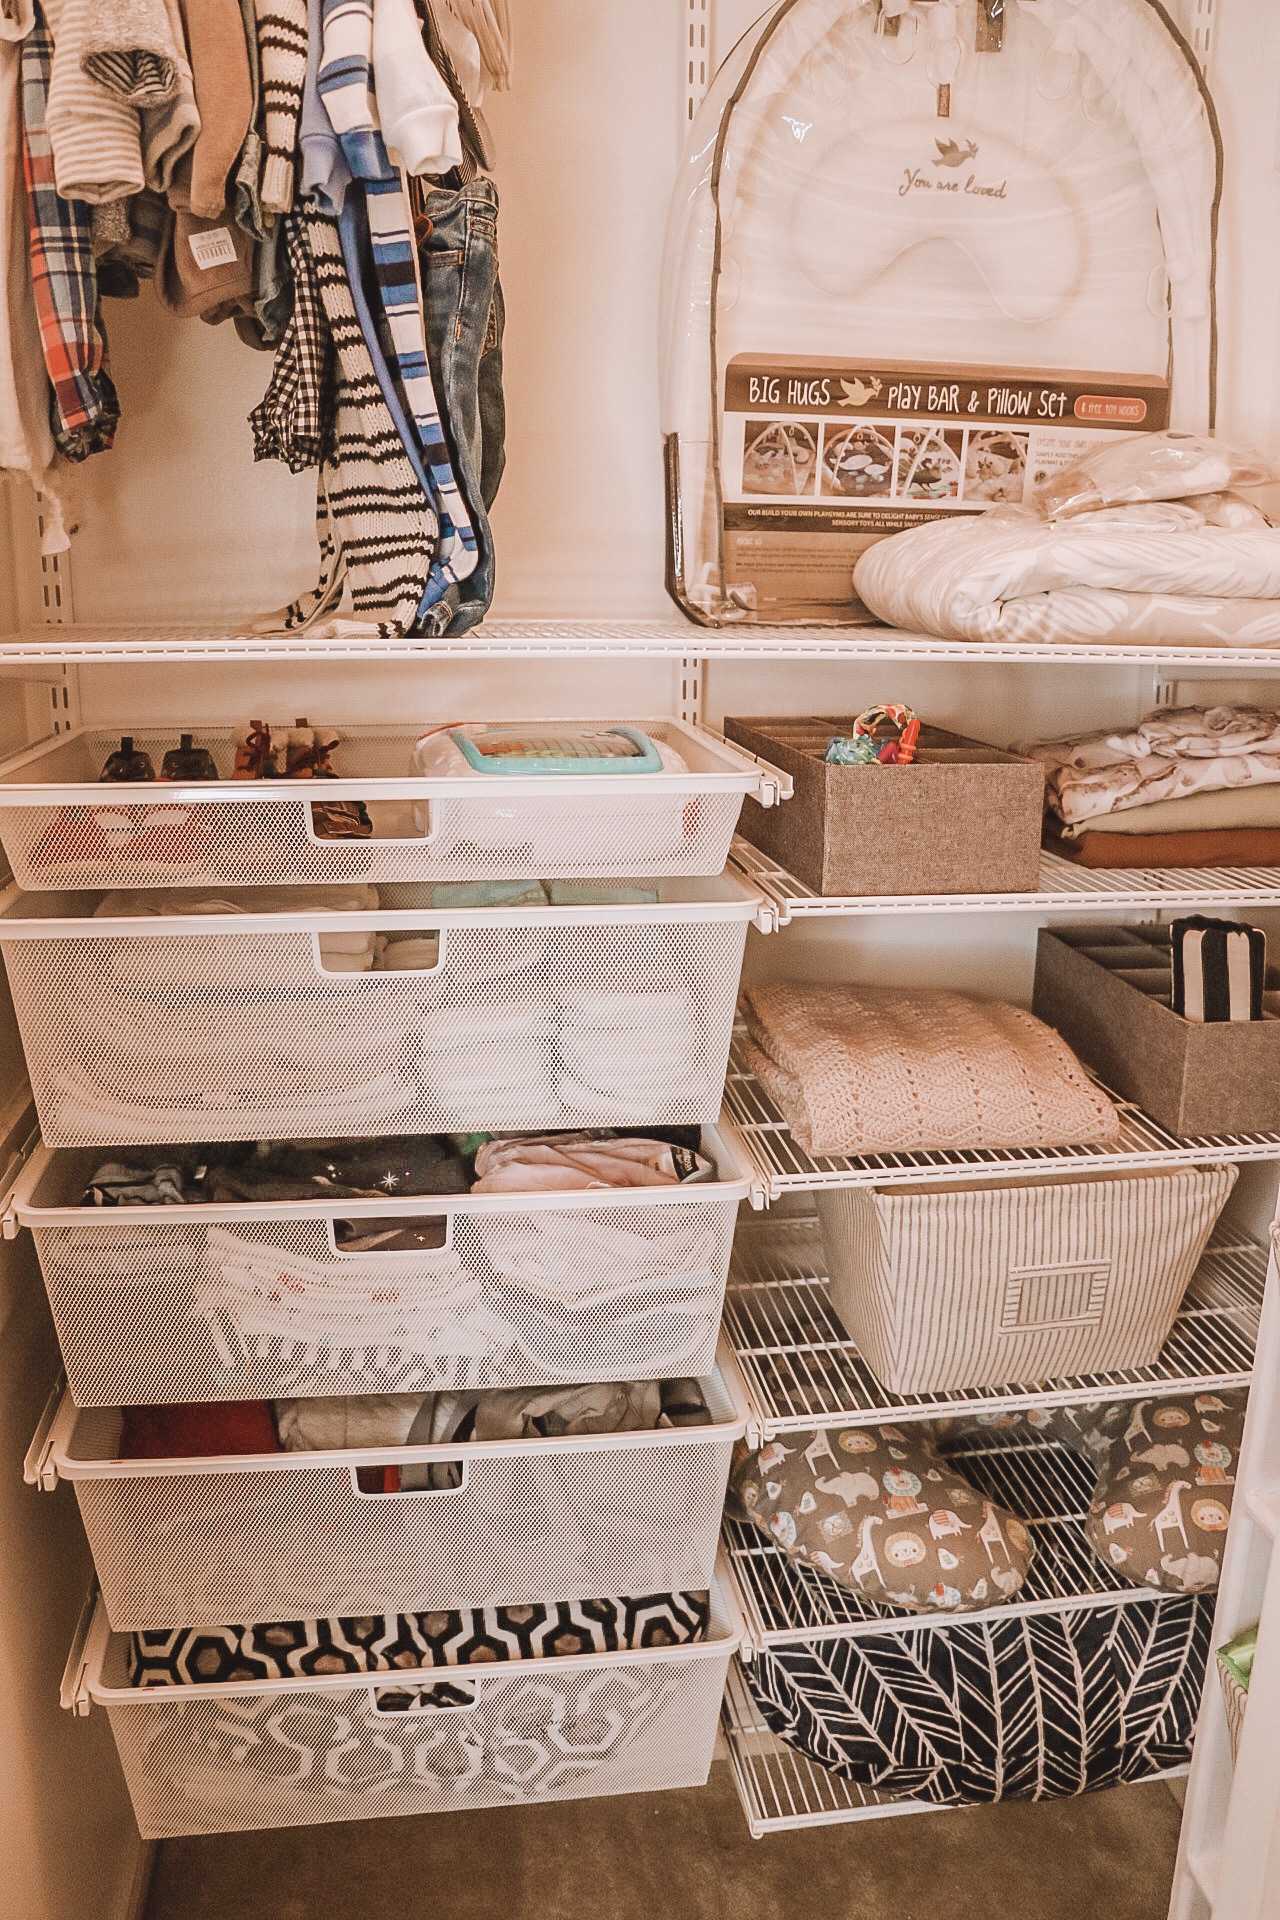 Organizing and Preparing Your Home for a Newborn: A Partnership with The Container Store